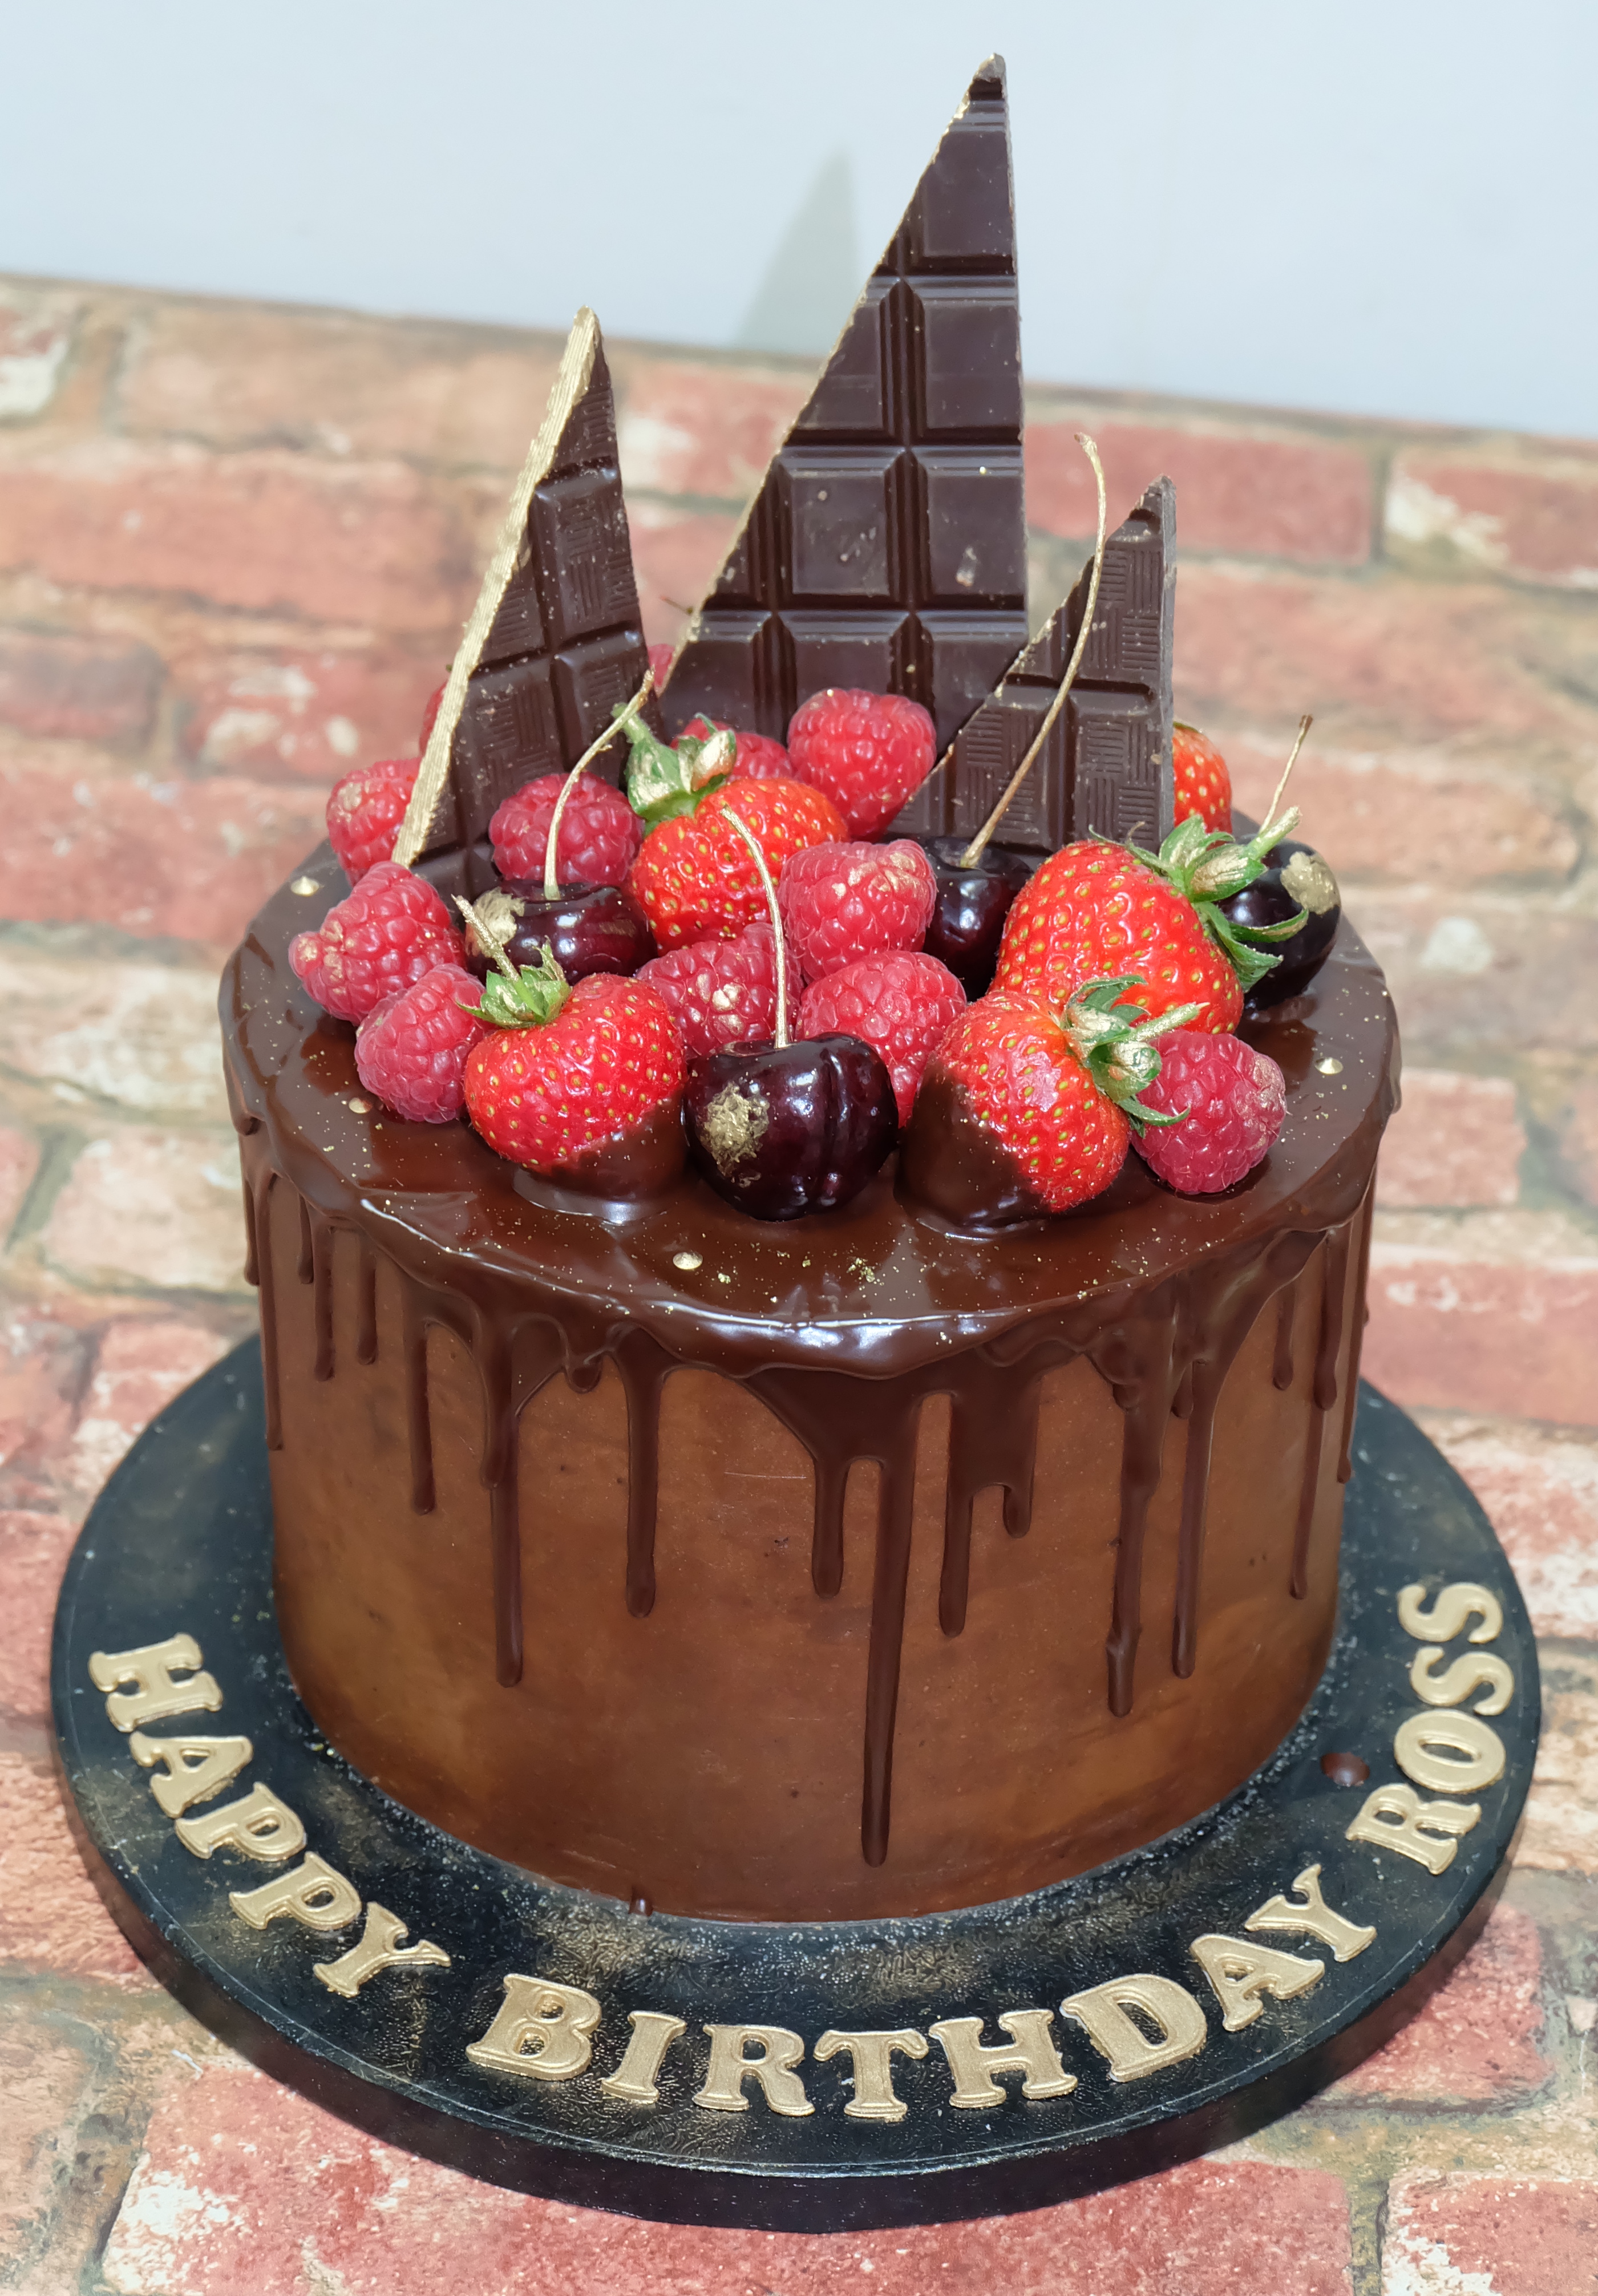 Chocolate Drip Cake with Chocolate Shards, Fresh Fruit & Gold Detail